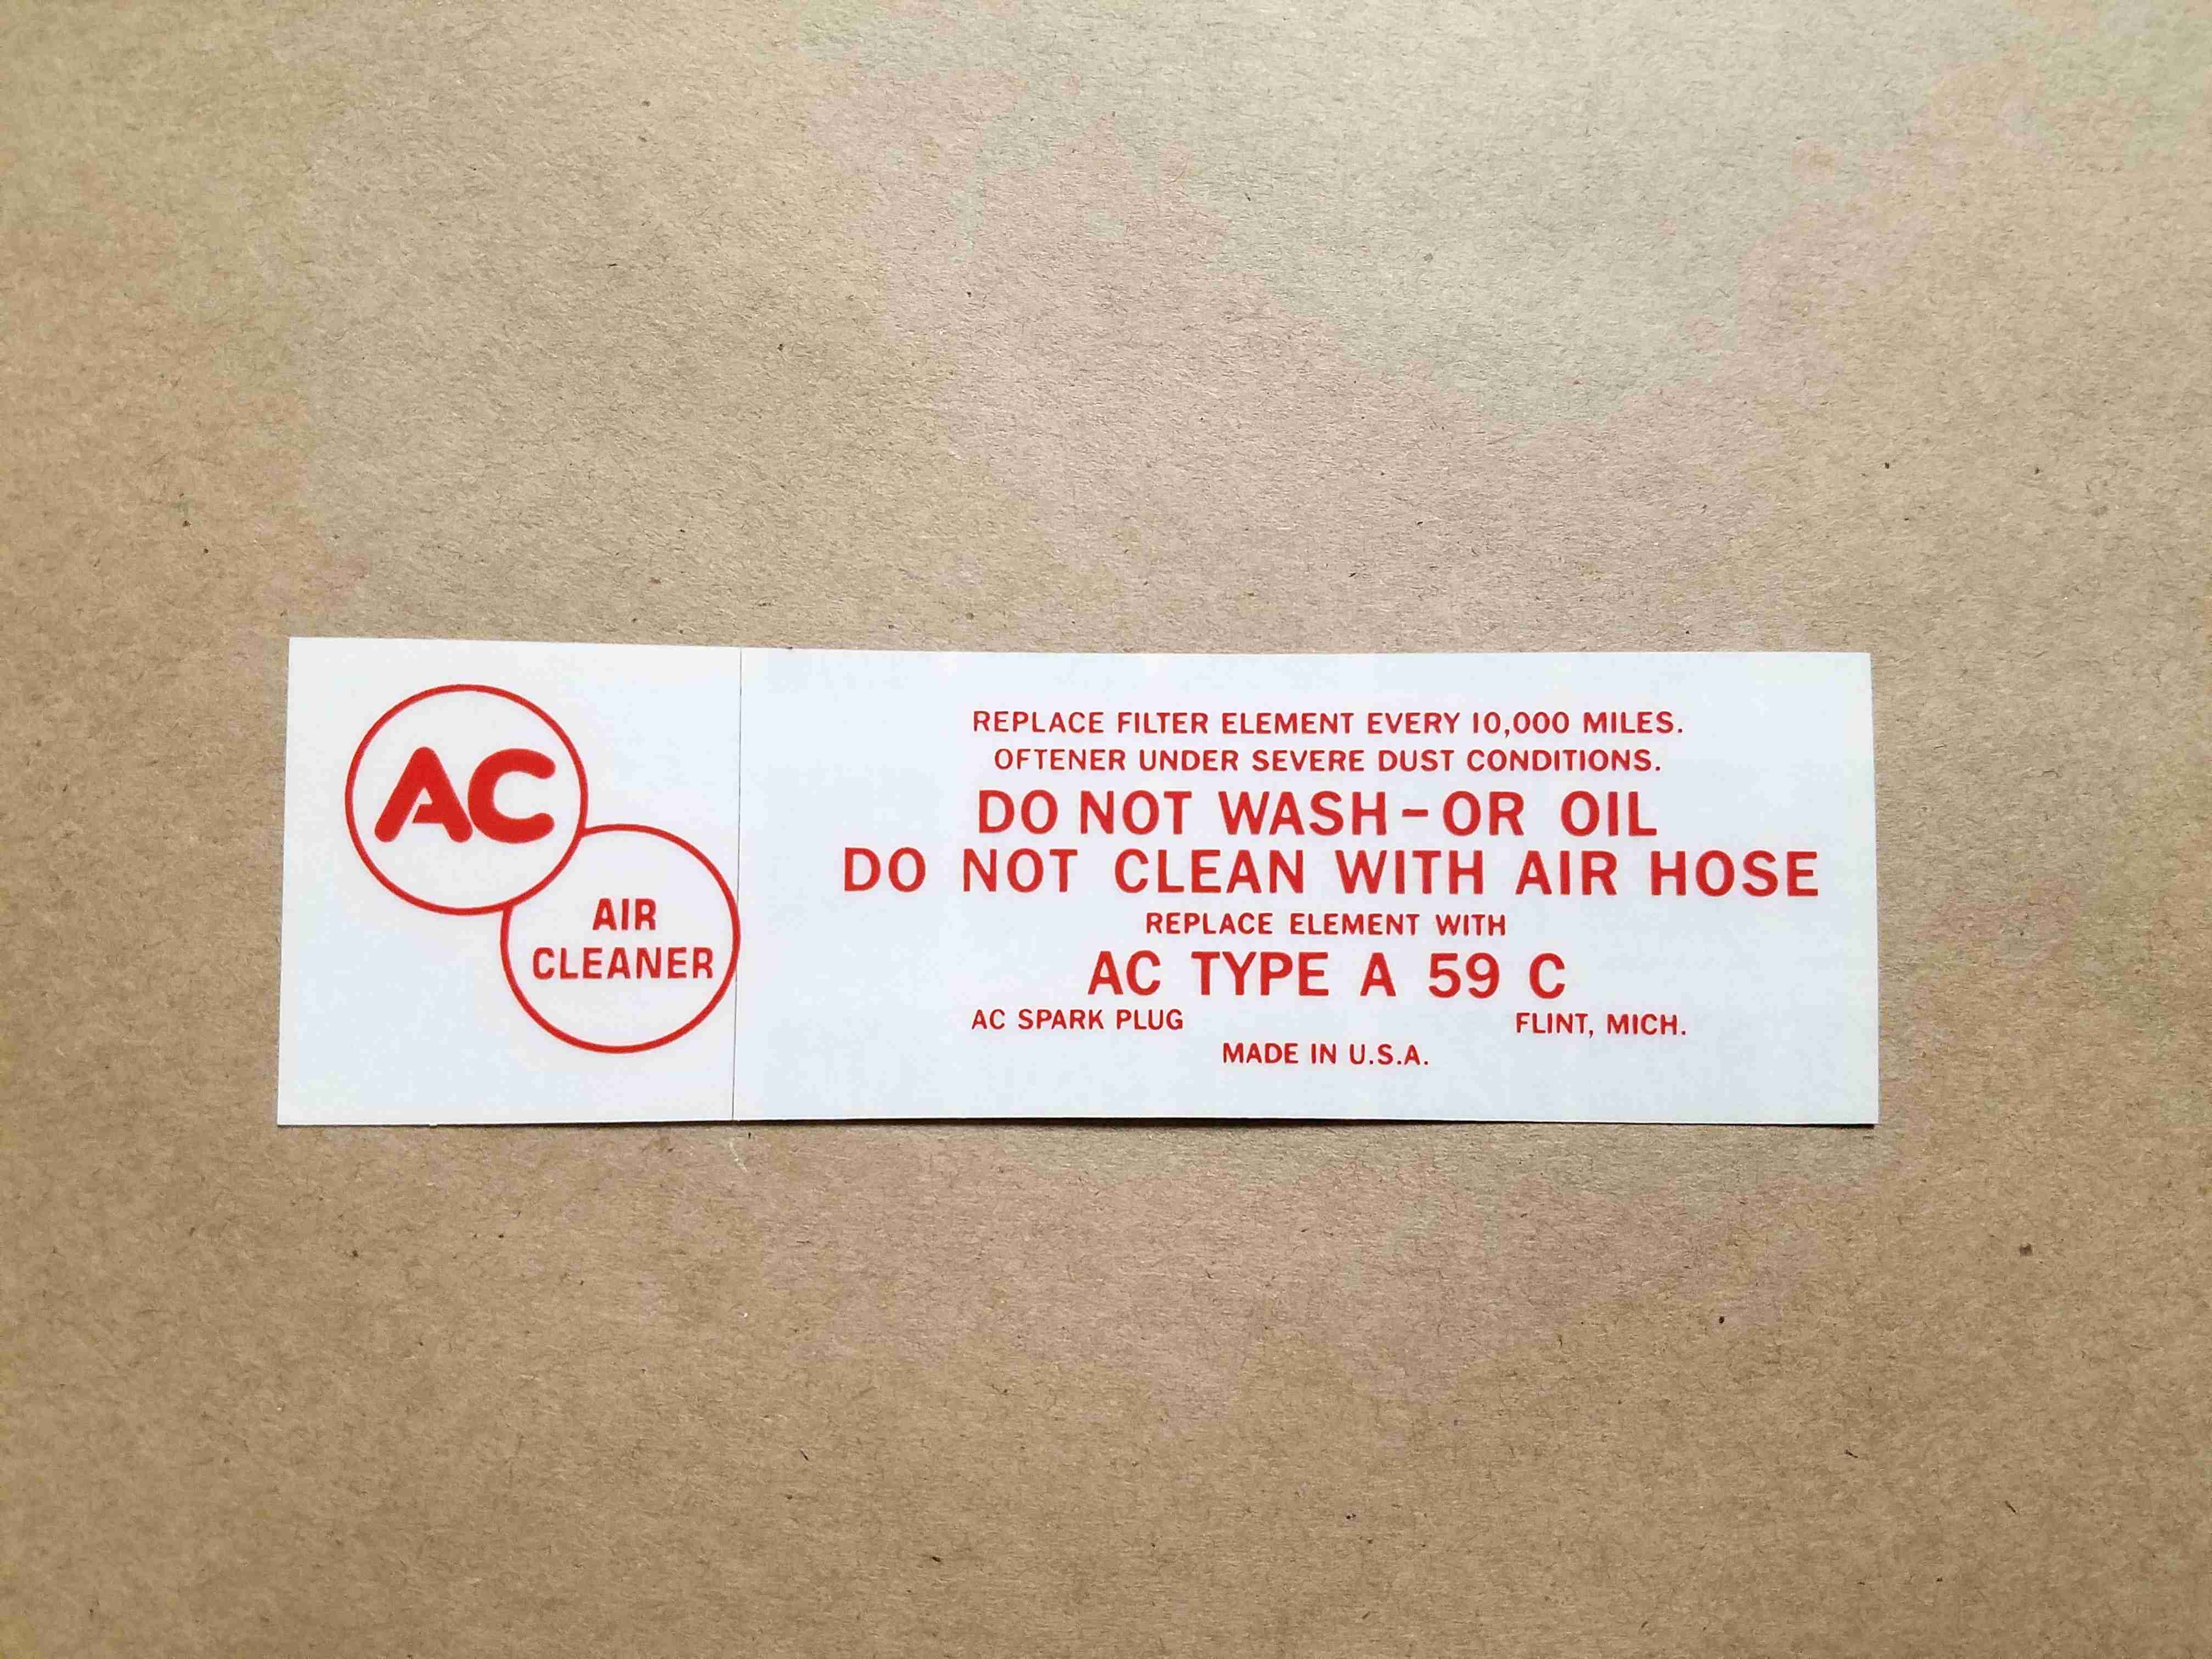 1958 w/ Tripower Red Air Cleaner Service Instruction Decal, rectangular, for A59C paper element air cleaner